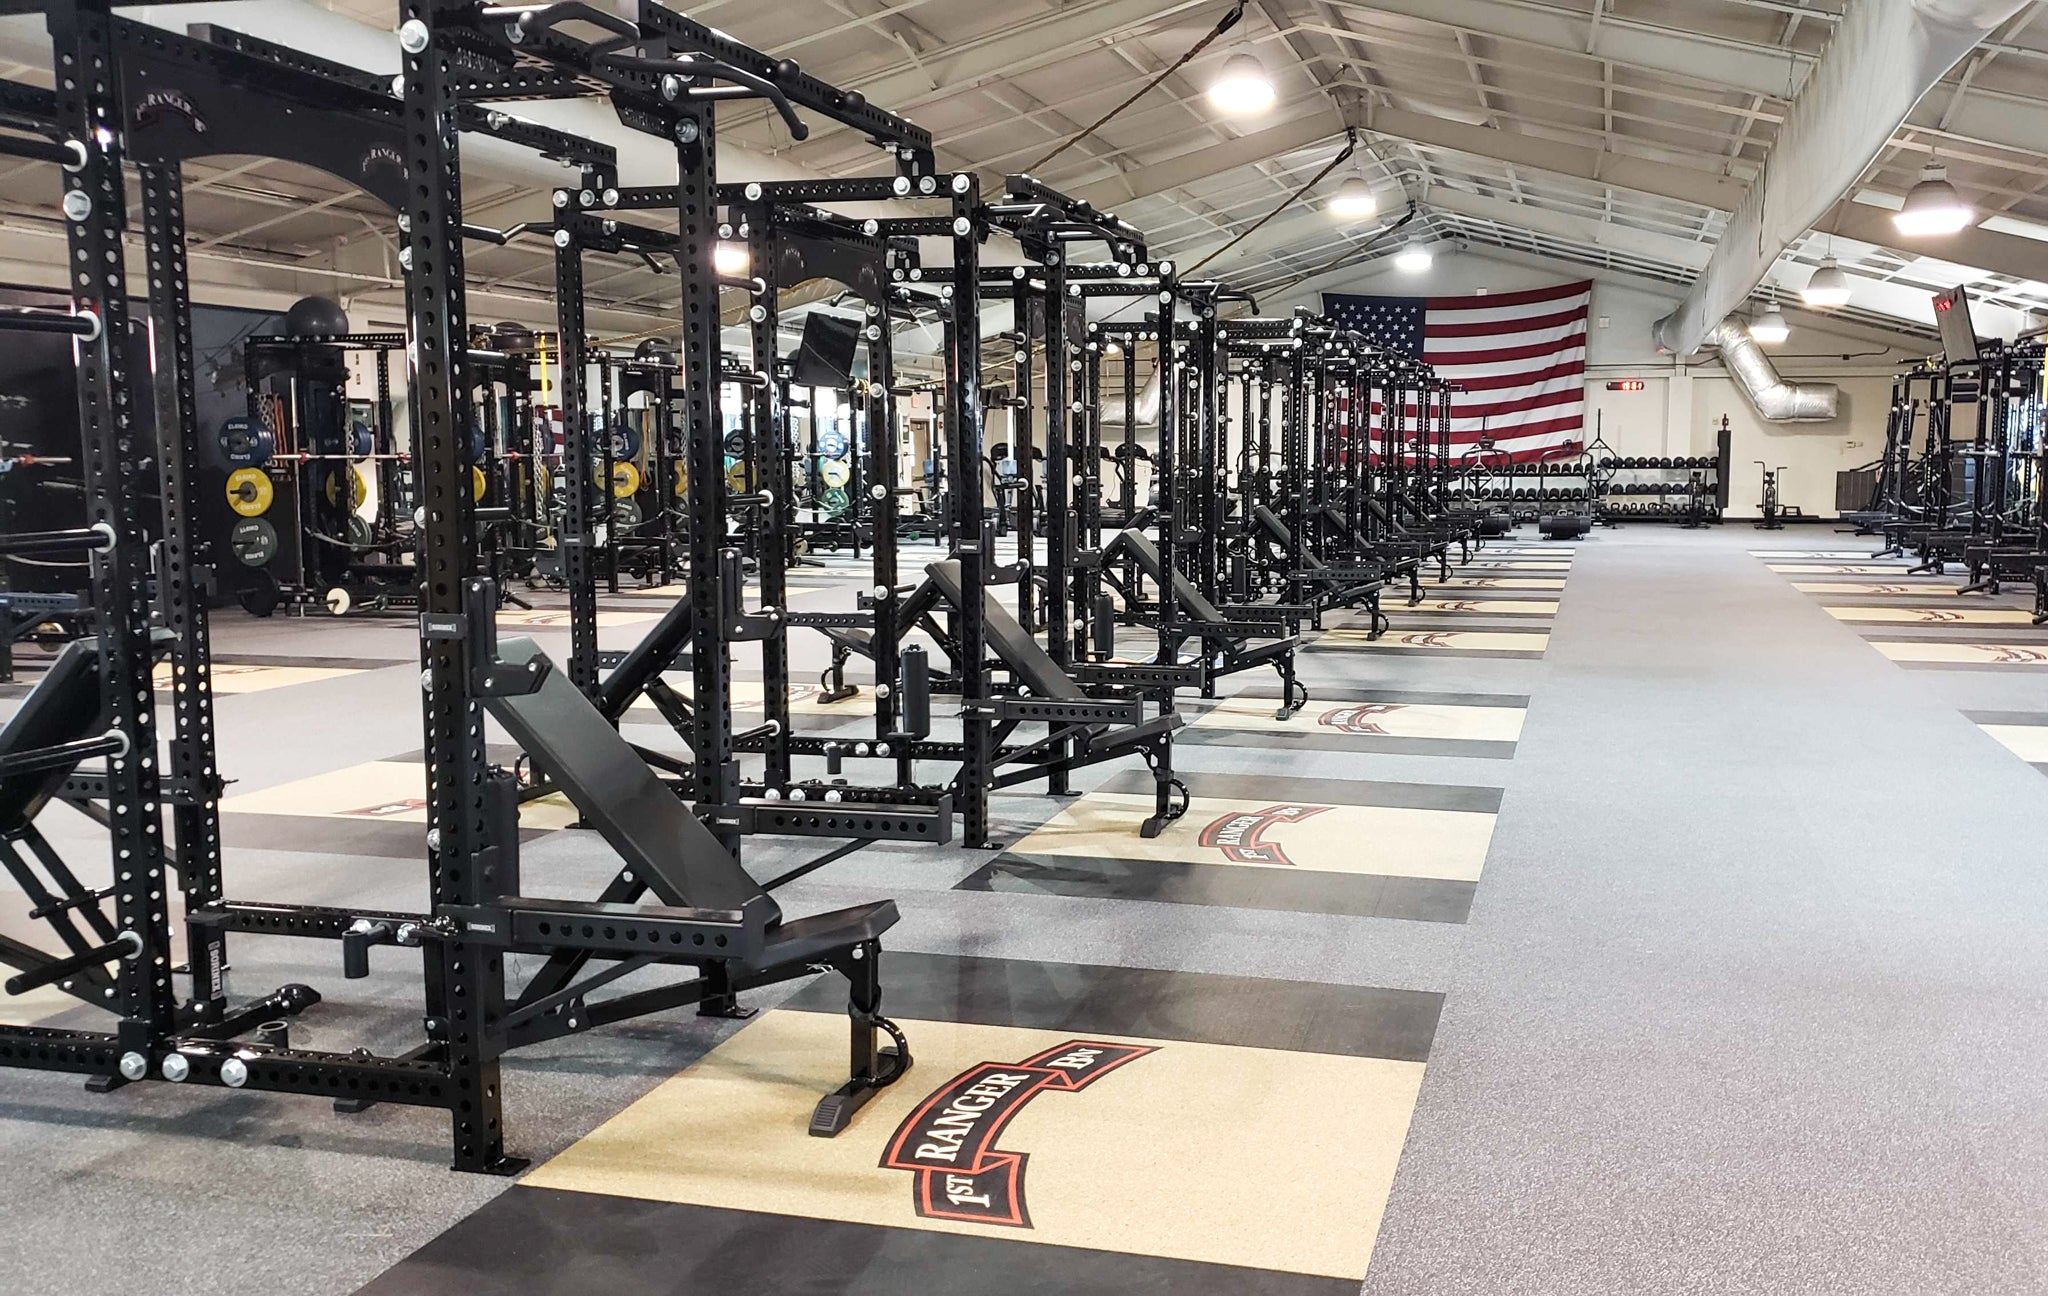 1/75 Rangers Military Weight Room